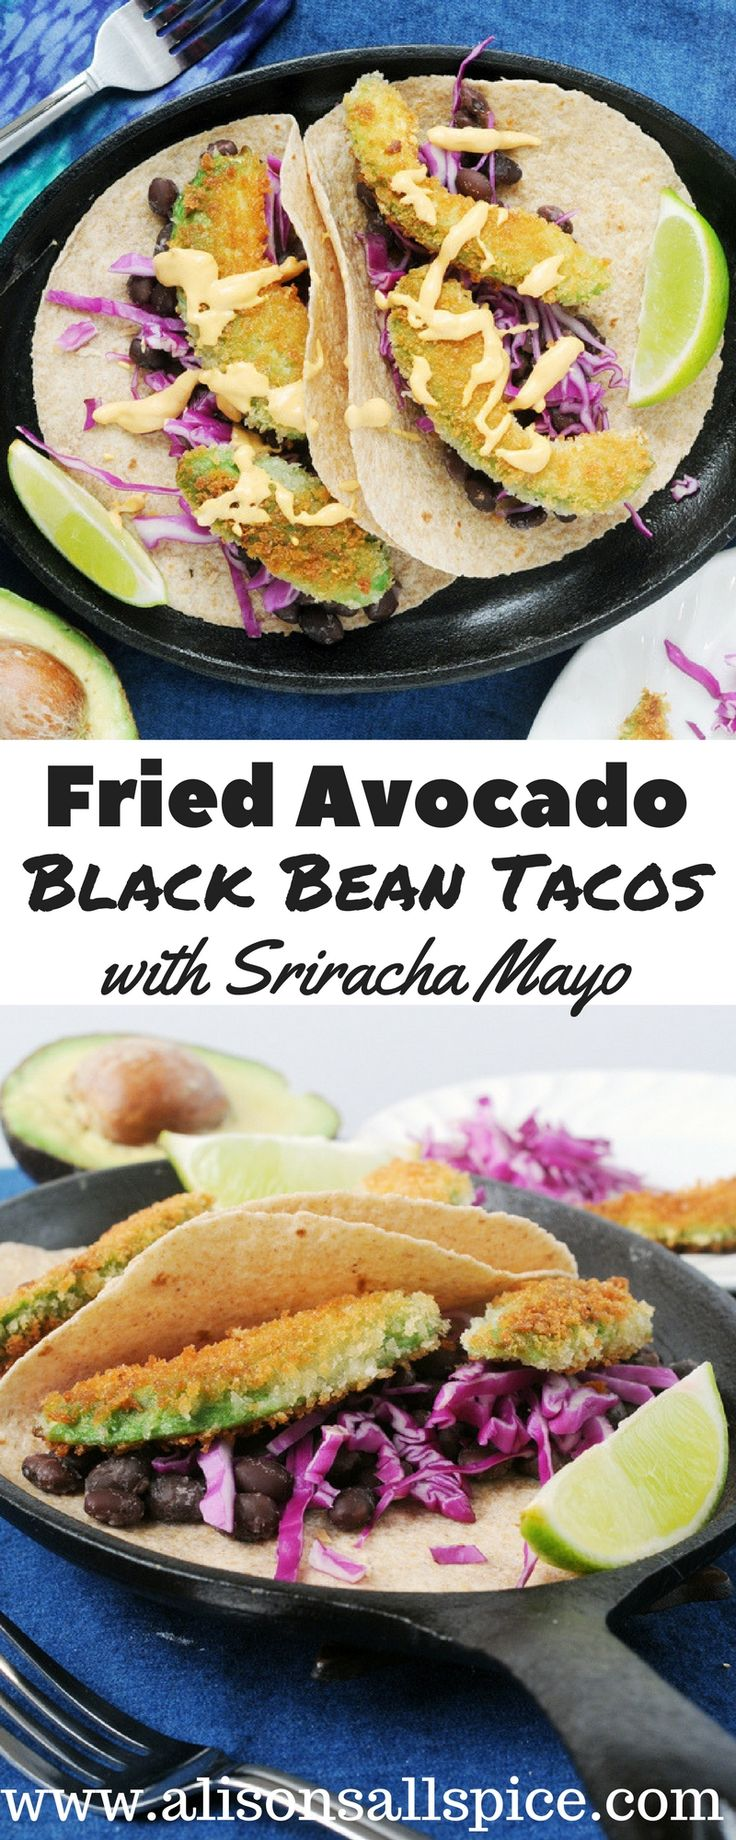 In my fried avocado black bean tacos, the avocado is coated in panko and lightly fried for crispy yet creamy taco topper! Serve over seasoned black beans!